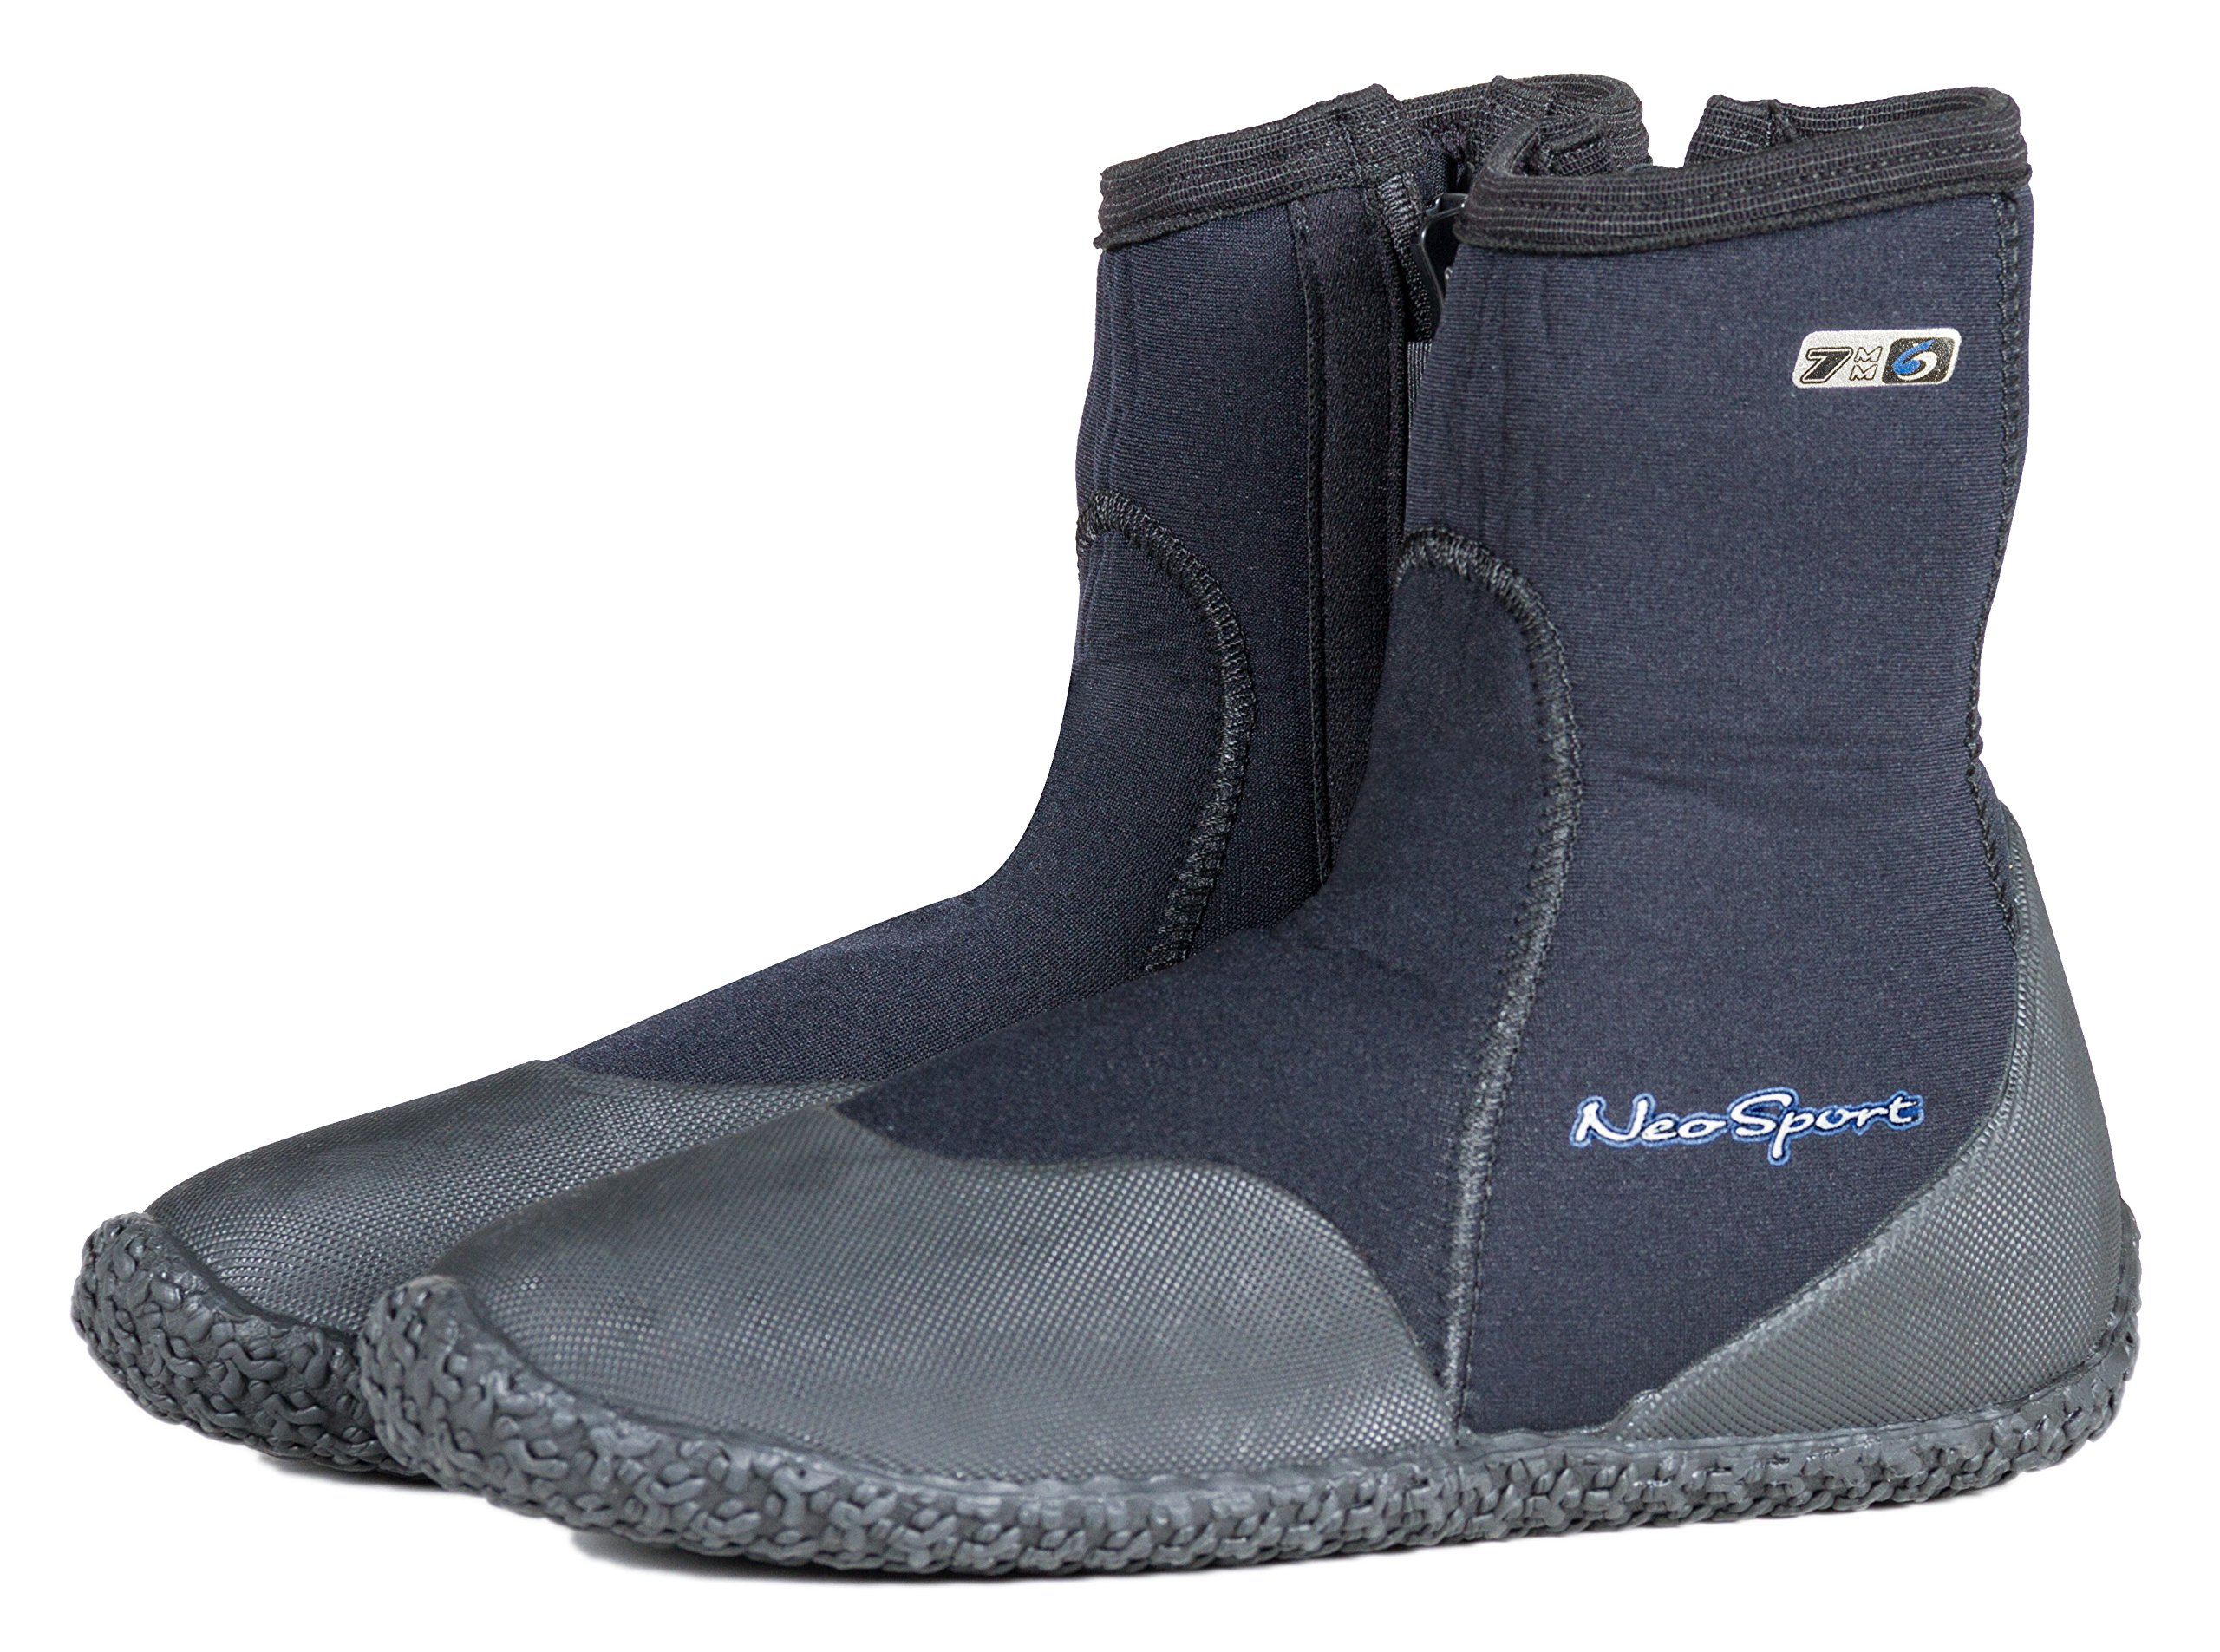 Neo Sport Premium Neoprene Men & Women Wetsuit Boots, Shoes with puncture resistant sole 3mm, 5mm & 7mm for warm, moderate or cold water for watersports: beach, boat, lake, mud, kayak and more! Sizes 4 - 16 by Neo-Sport